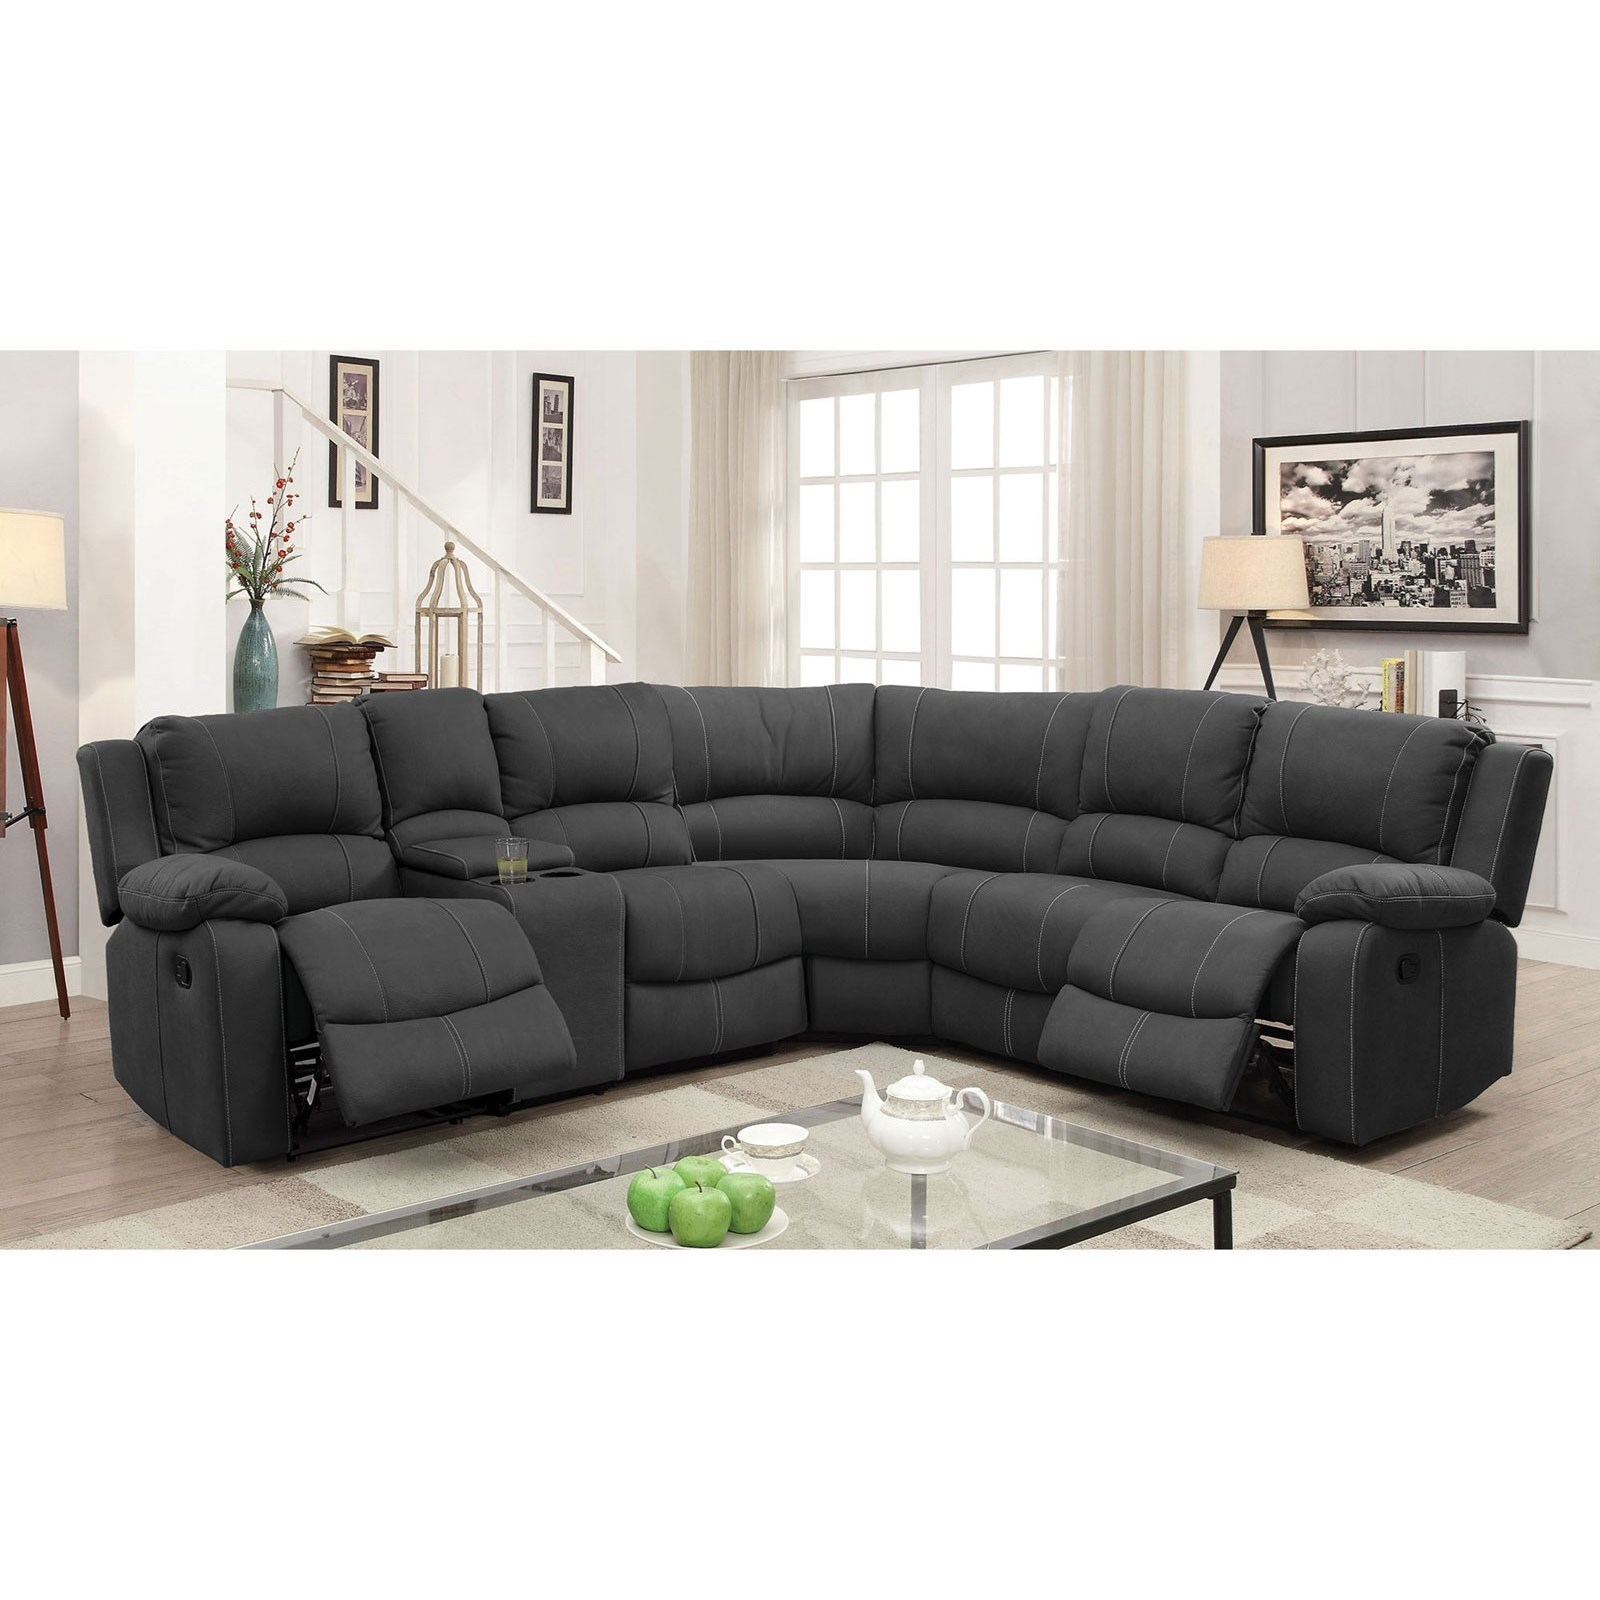 Monique Reclining Sectional w/ Console by Furniture of America at Nassau Furniture and Mattress